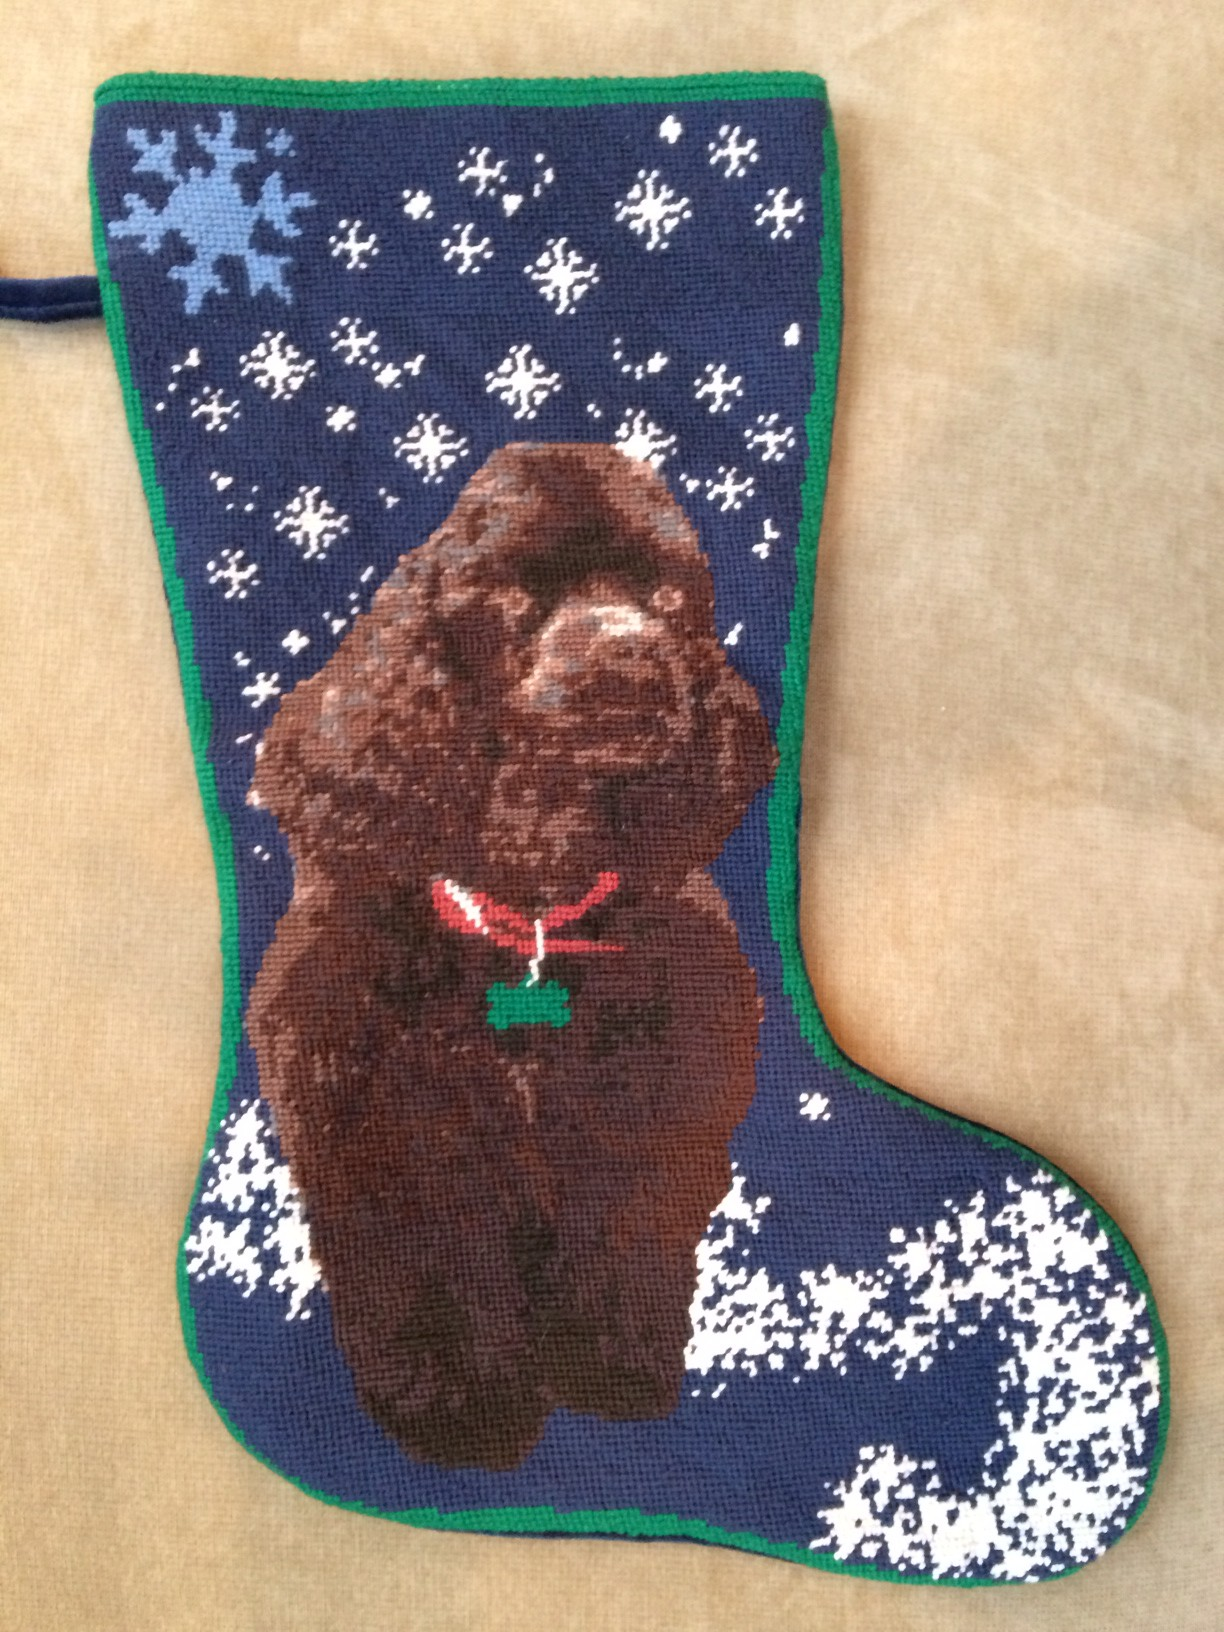 Fascinating personalized needlepoint christmas stockings for christmas decorating ideas with needlepoint christmas stockings personalized